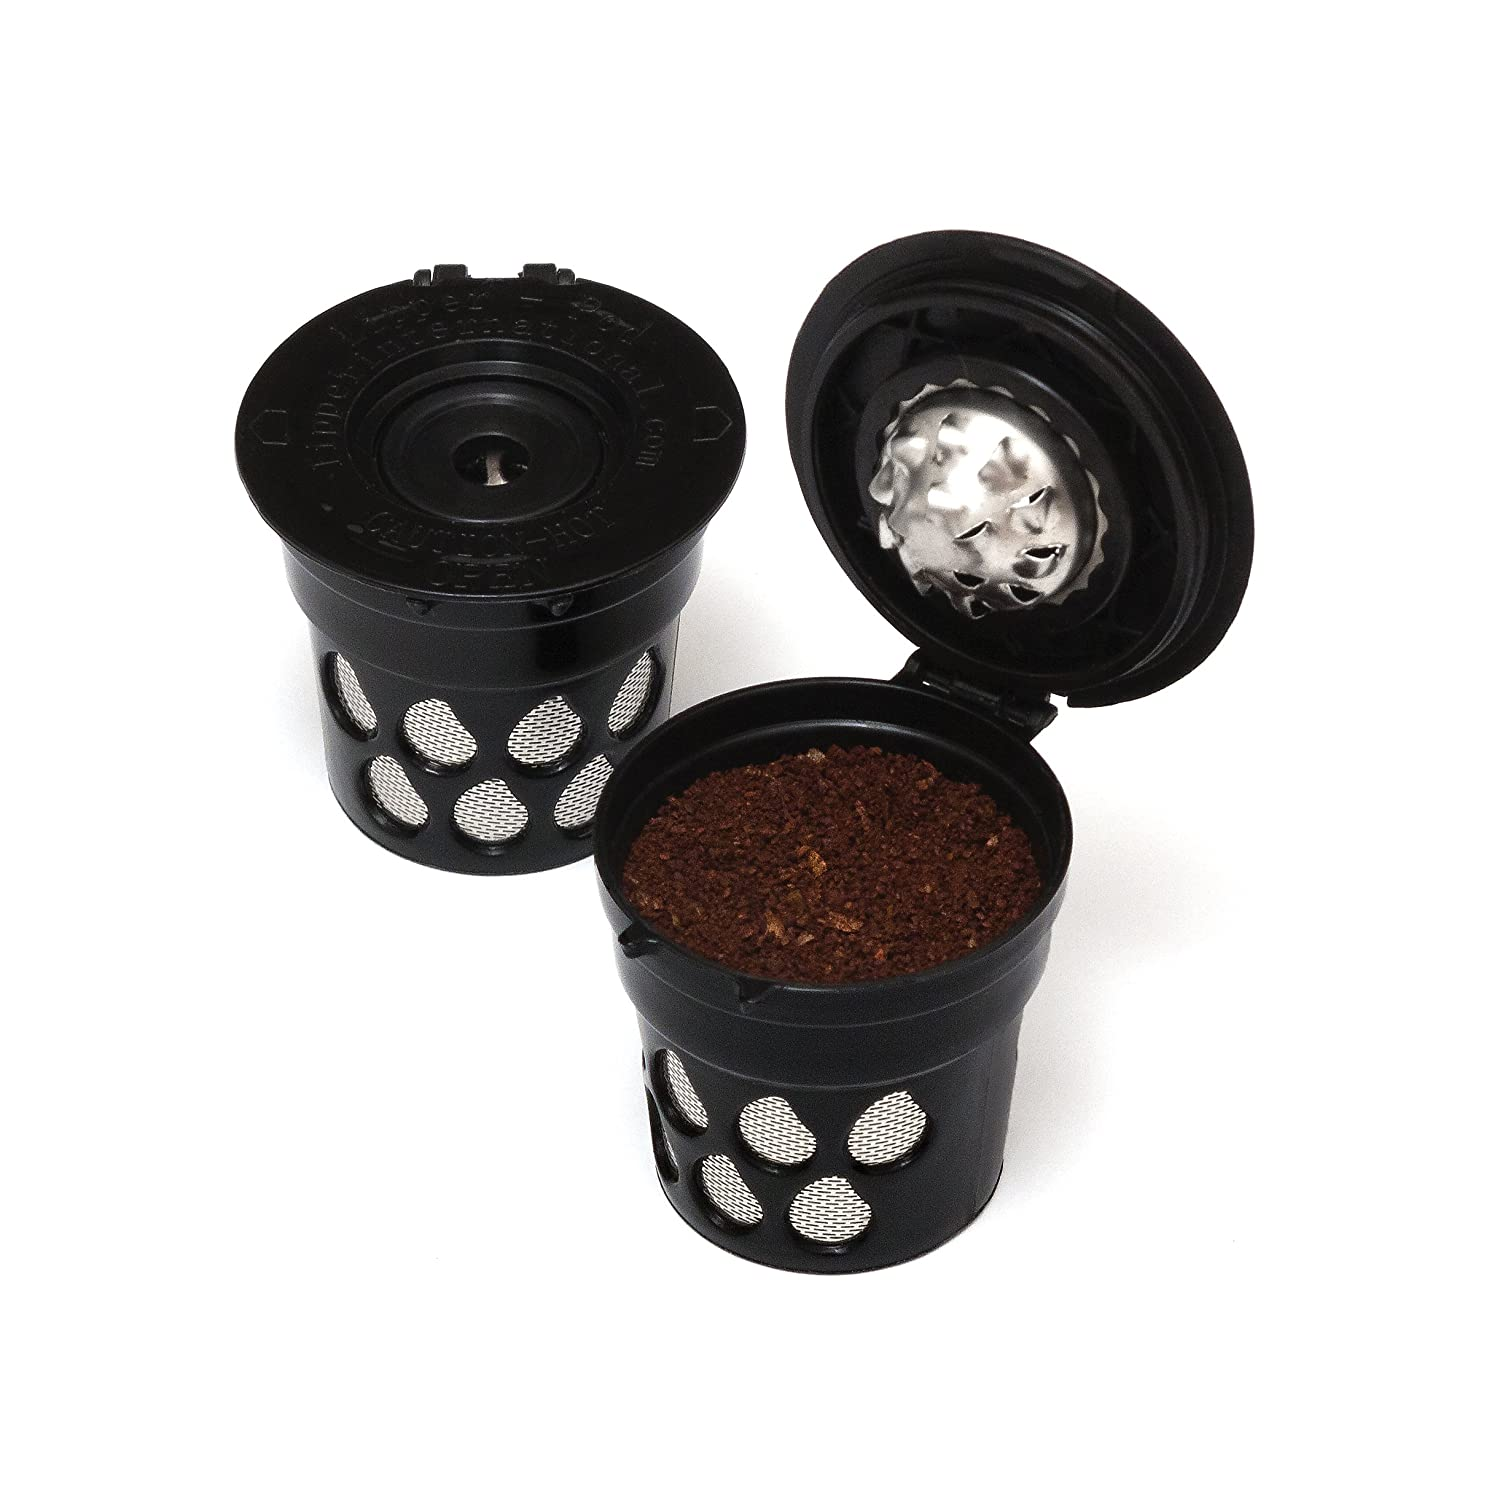 Reusable Coffee K-Cup Filters (Set of 2) - Use your Own Coffee in all Keurig 2.0